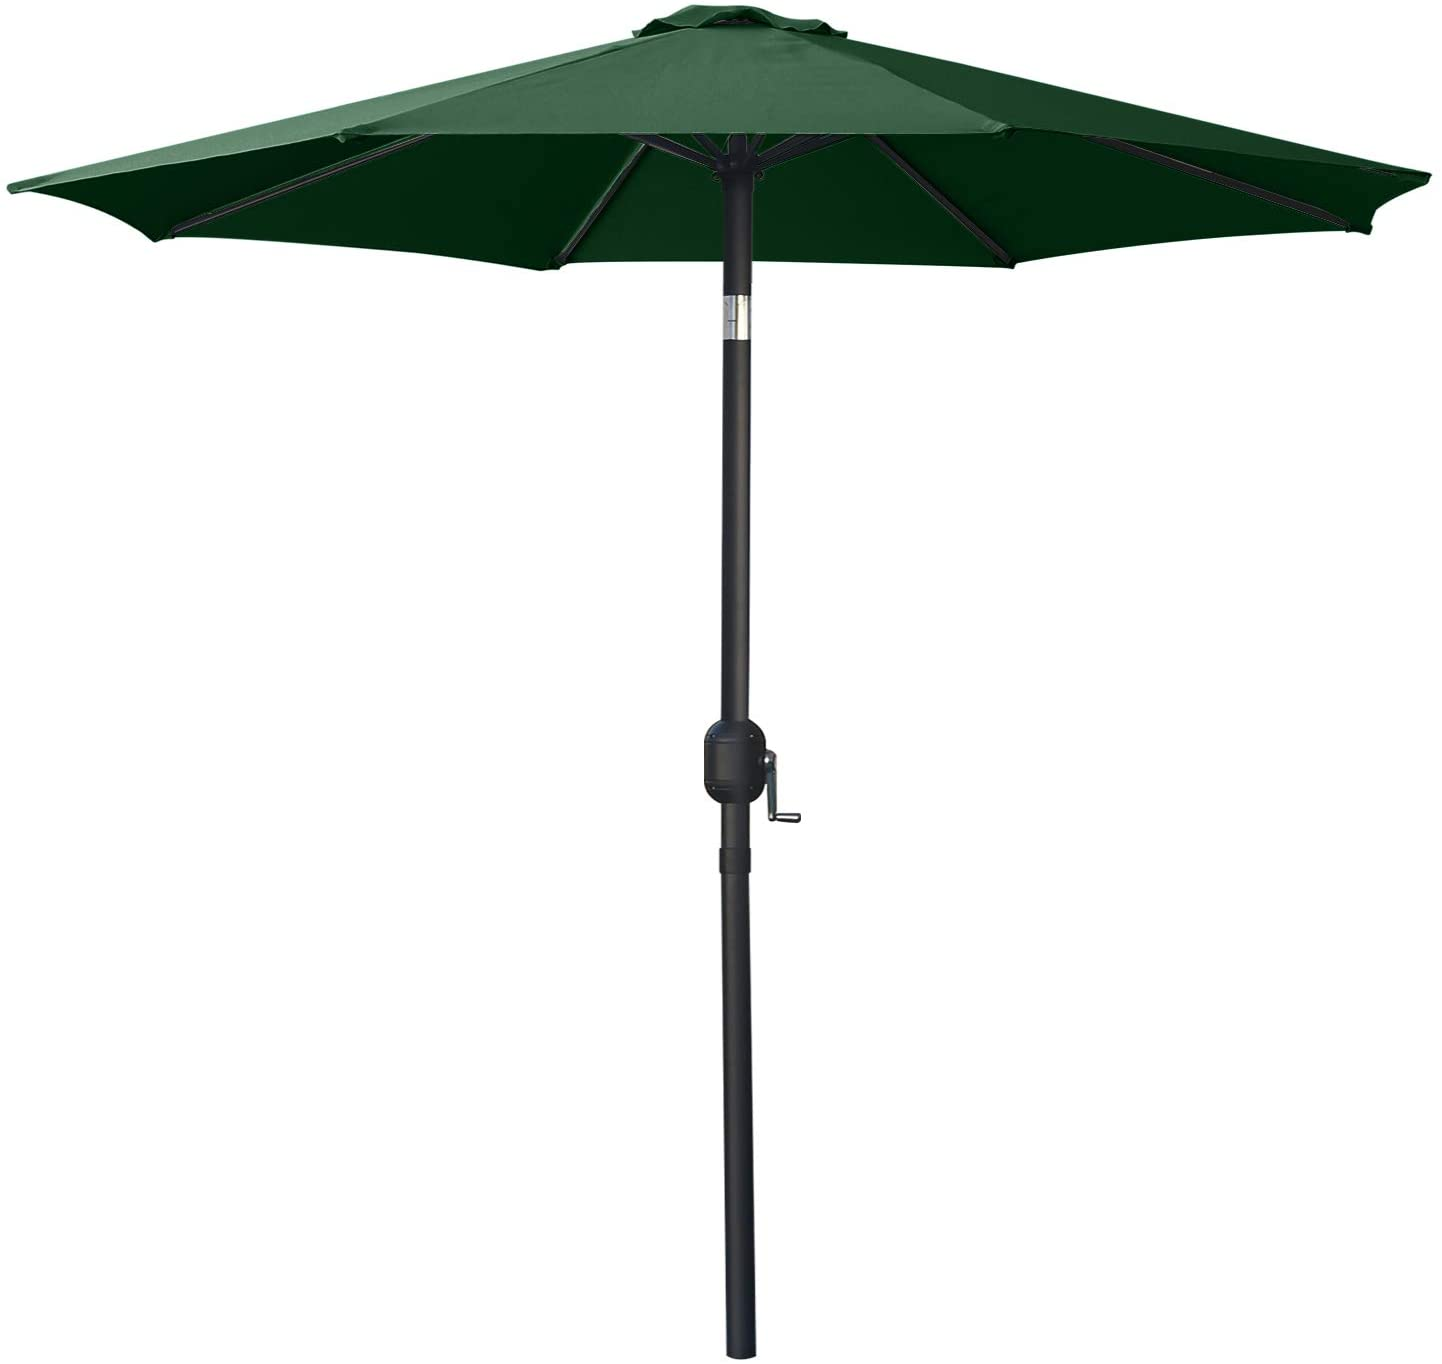 MASTERCANOPY Patio Umbrella Outdoor Fe-Al Market Table Umbrella with 8 Sturdy Ribs (9ft,Forest Green)